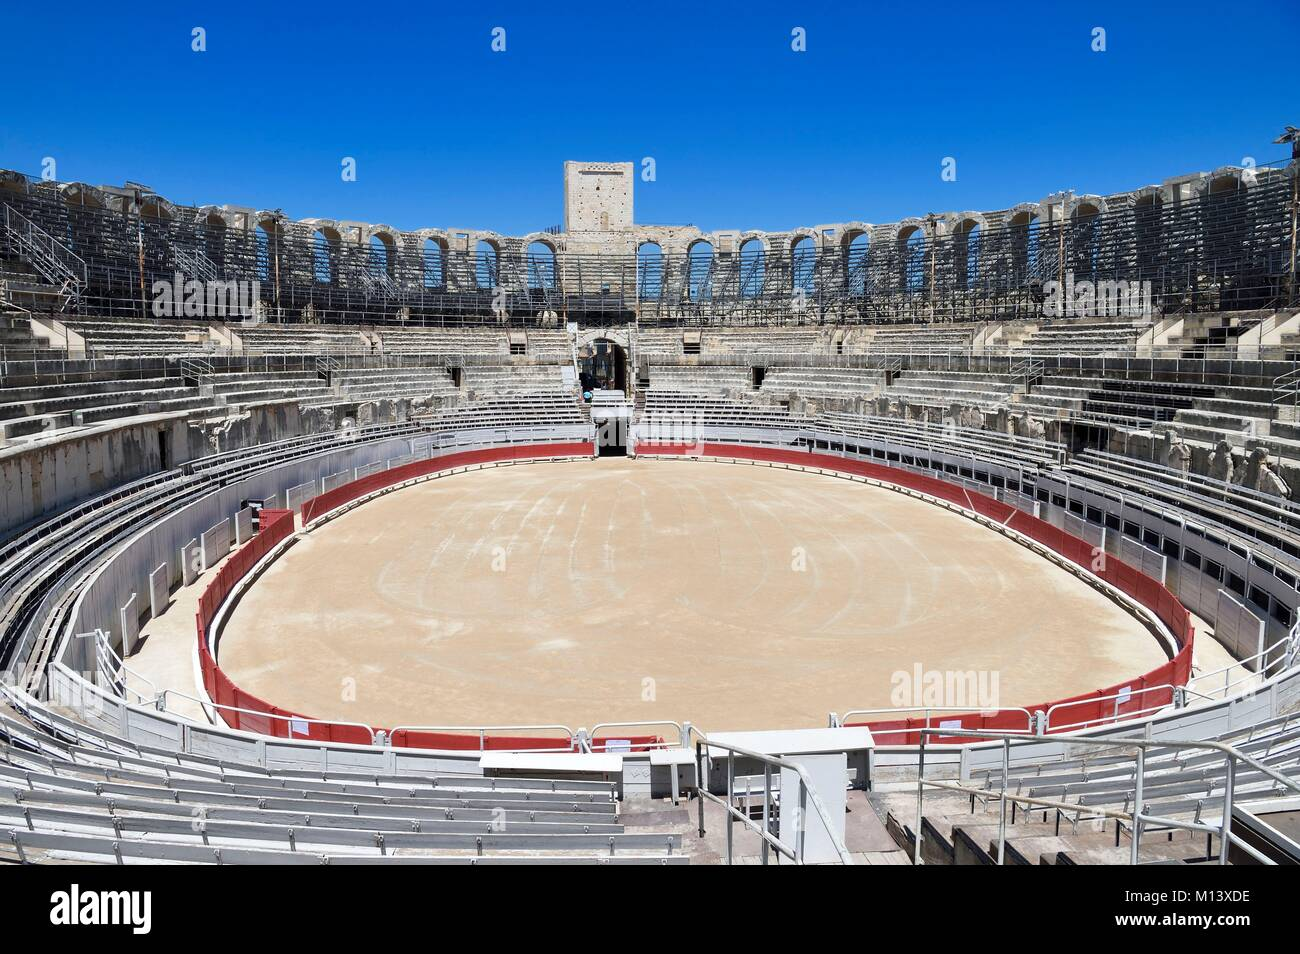 France, Bouches du Rhone, Arles, the Arenas, Roman Amphitheatre 80-90 AD, Historical monument, listed as World Heritage - Stock Image